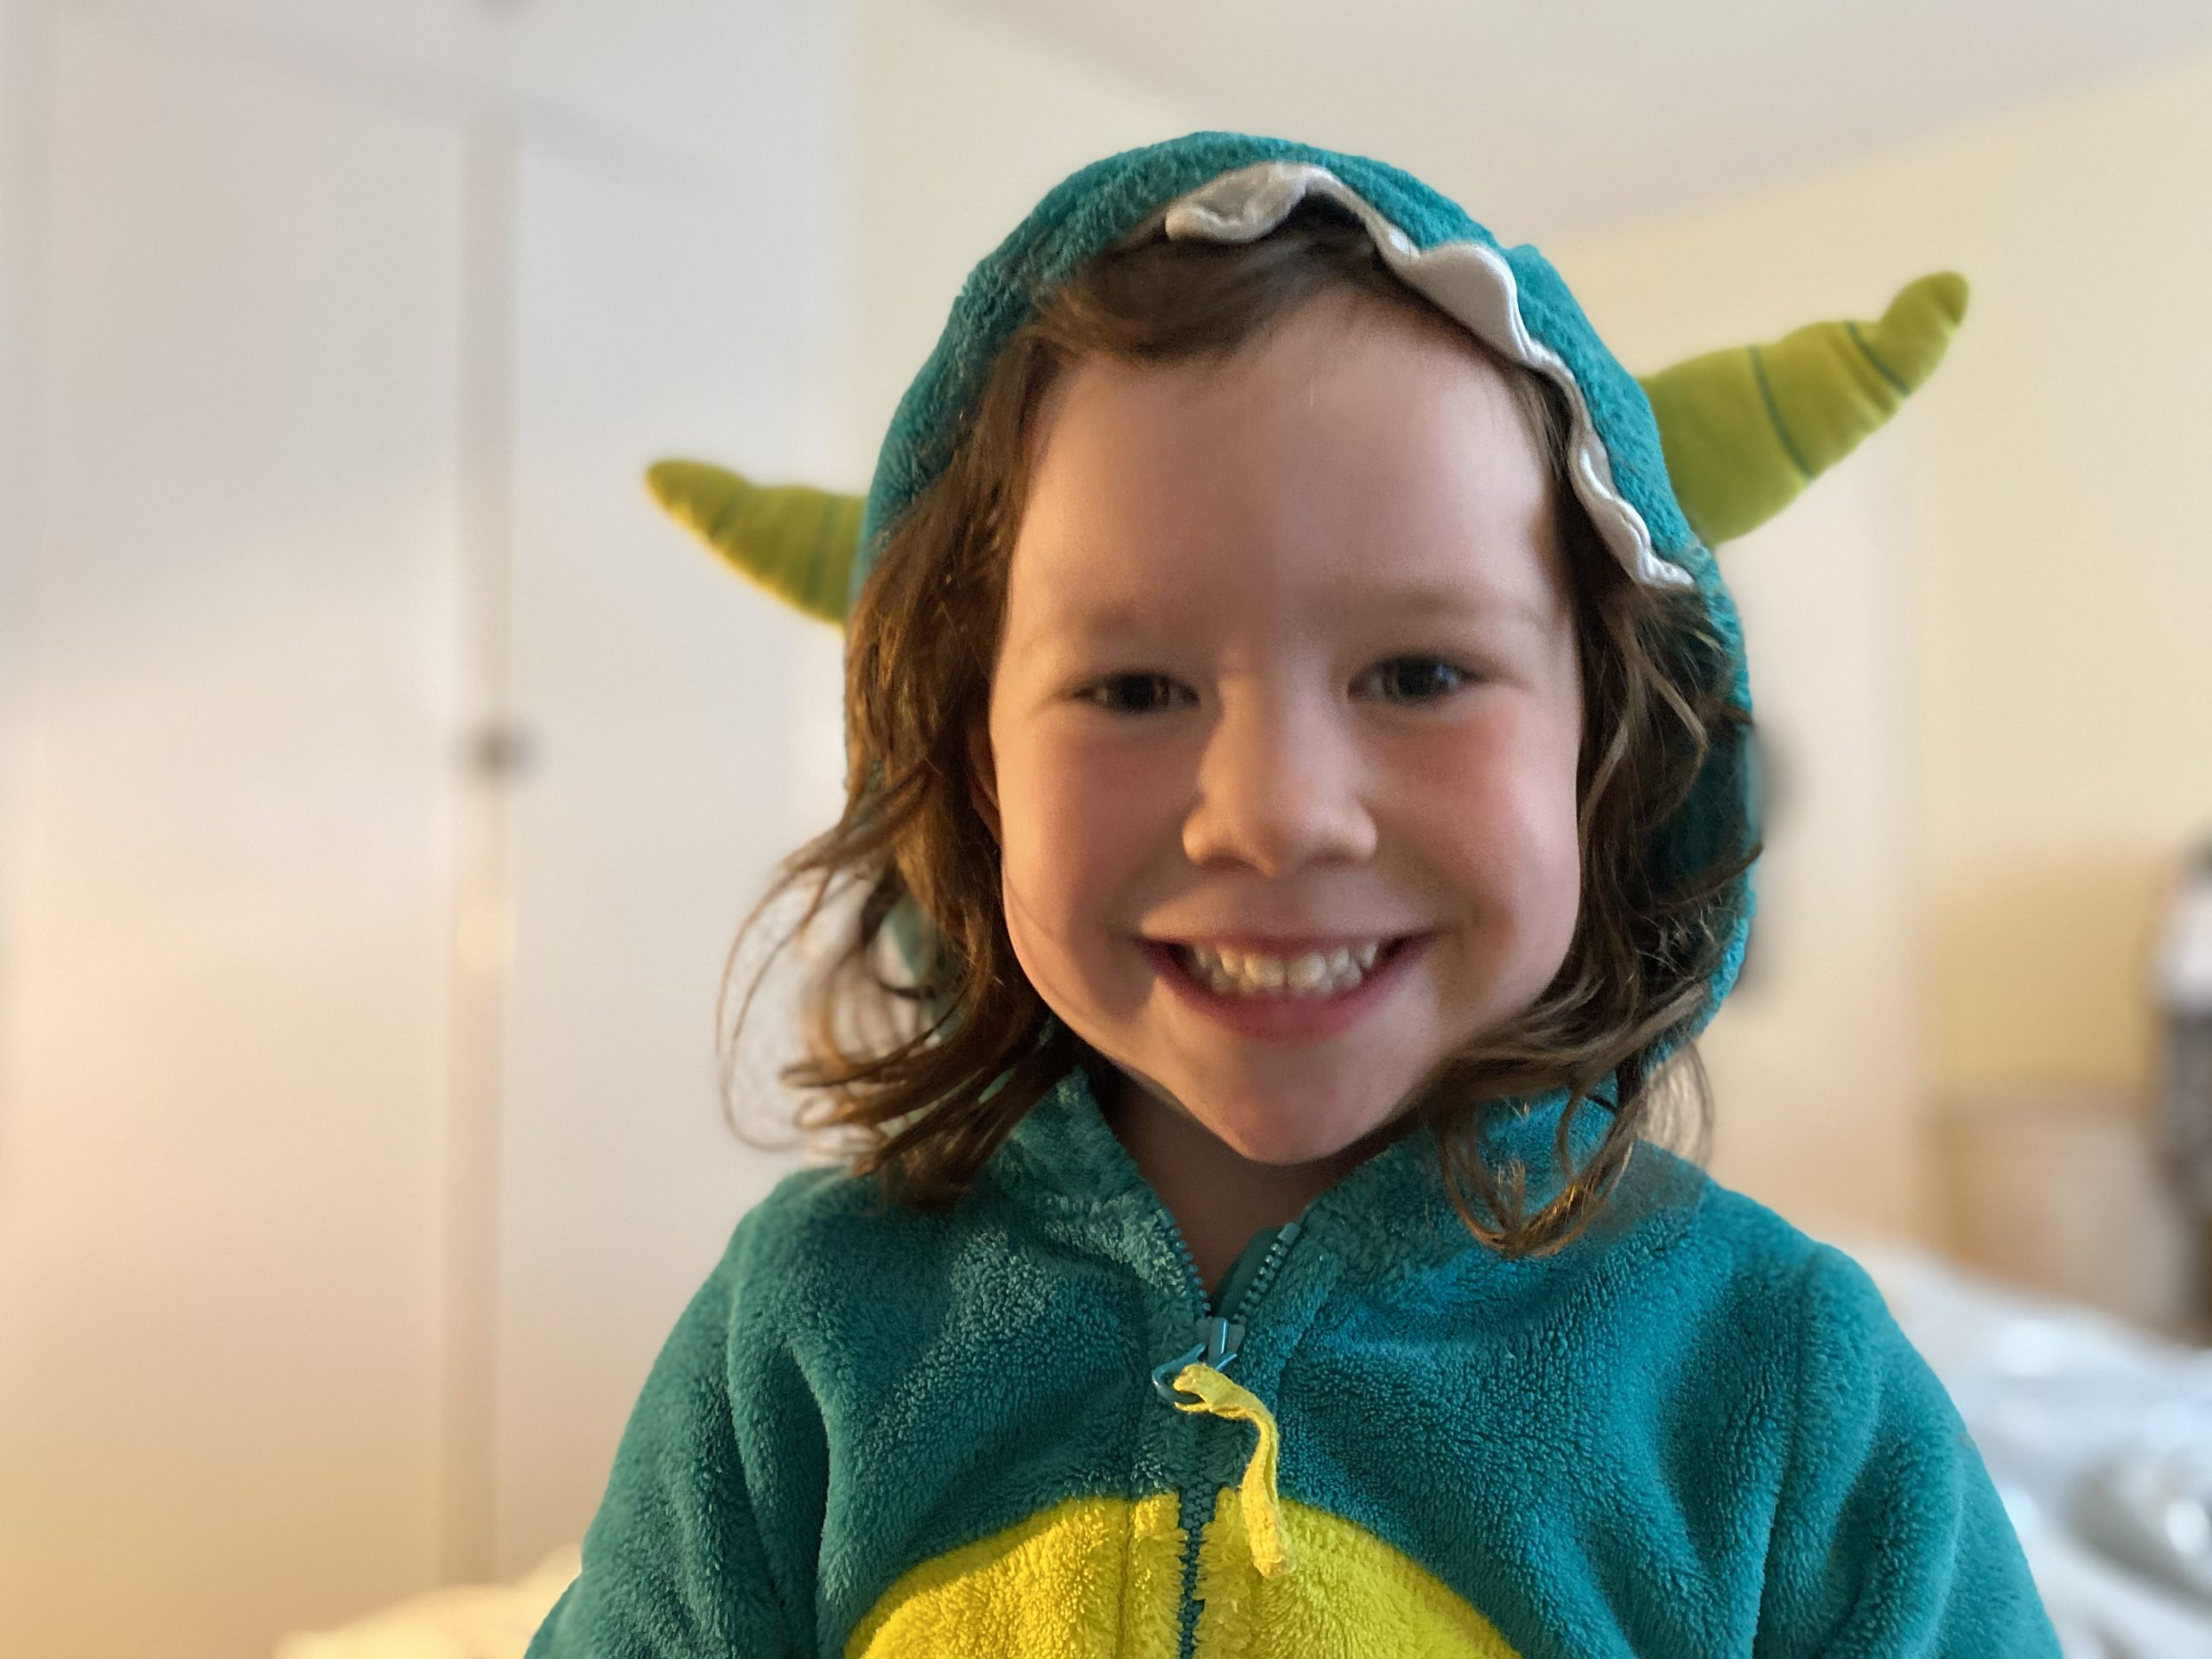 A child dressed as a dinosaur